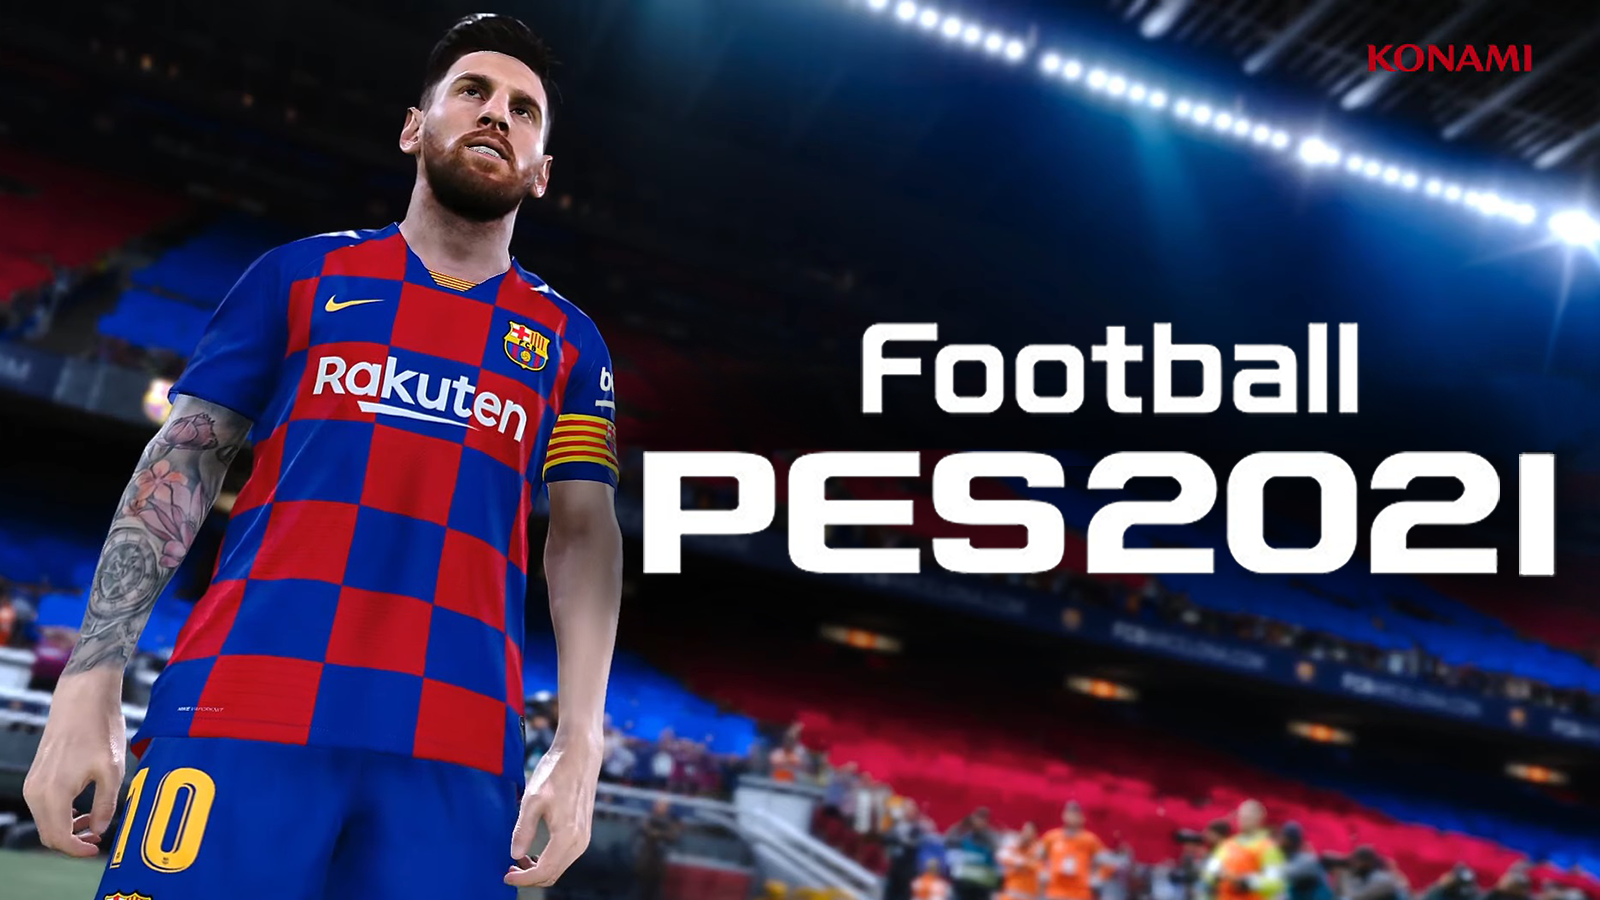 Barcelona superstar Lionel Messi is expected to appear on the cover of PES 2021 as part of his club's four-year deal.